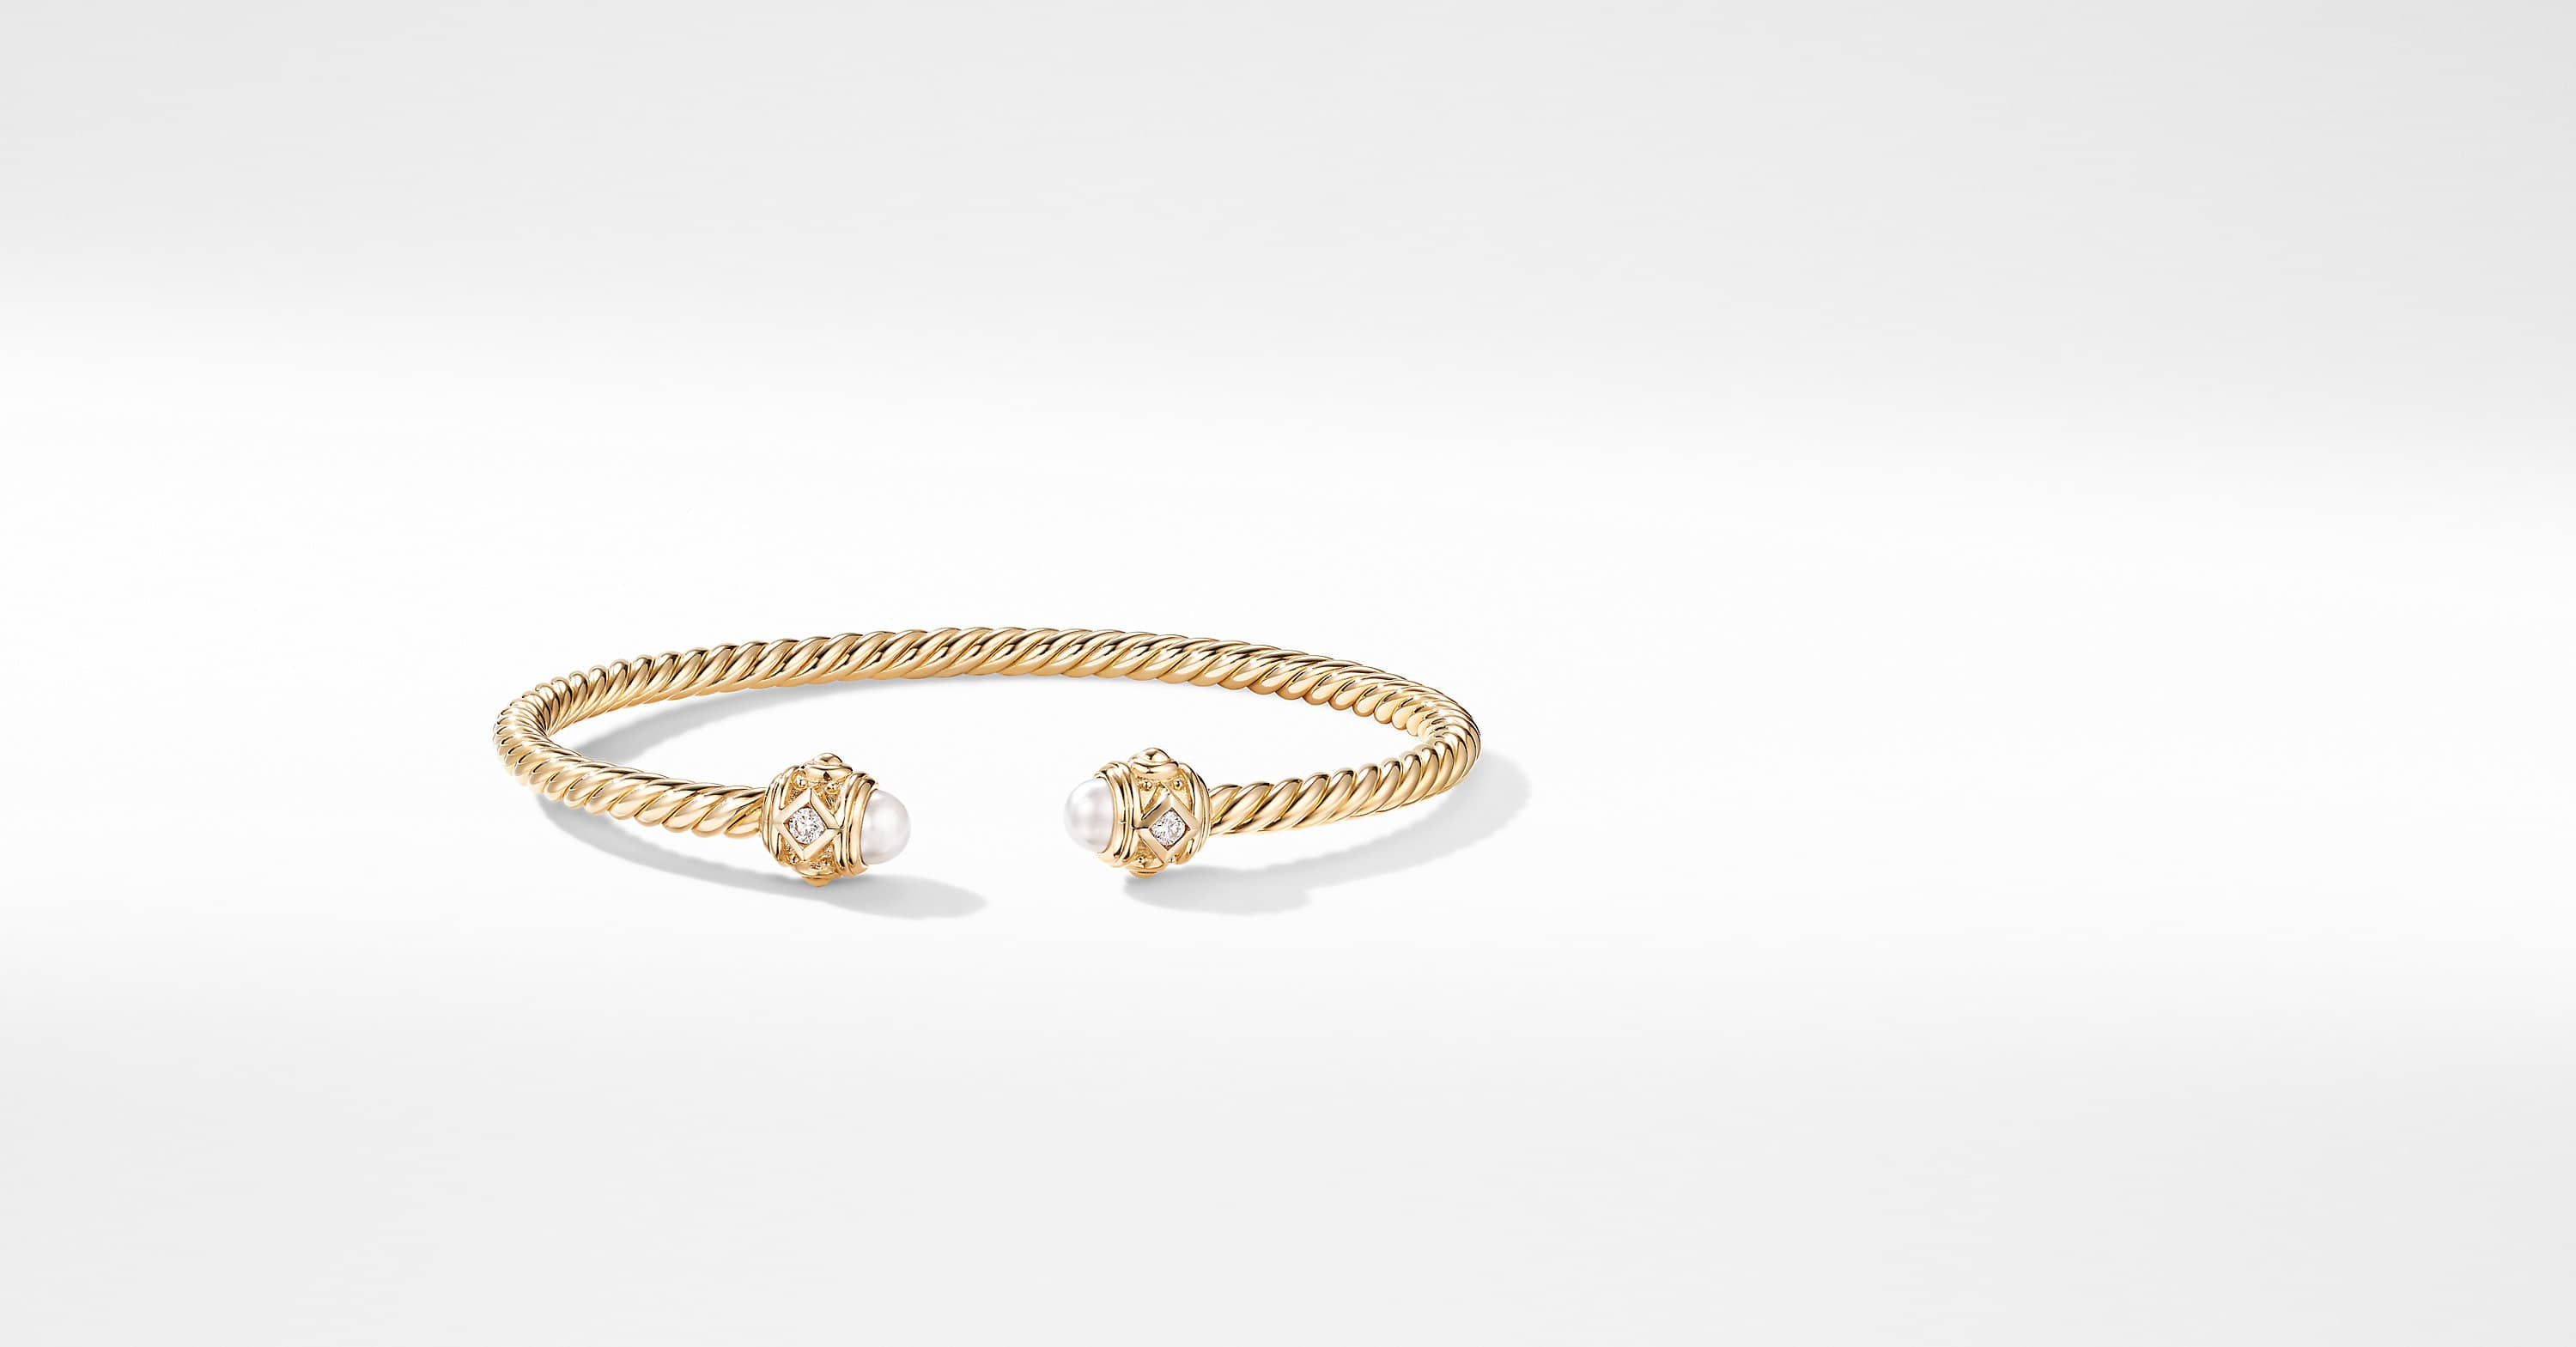 Renaissance Bracelet in 18K Yellow Gold with Diamonds, 3.5mm